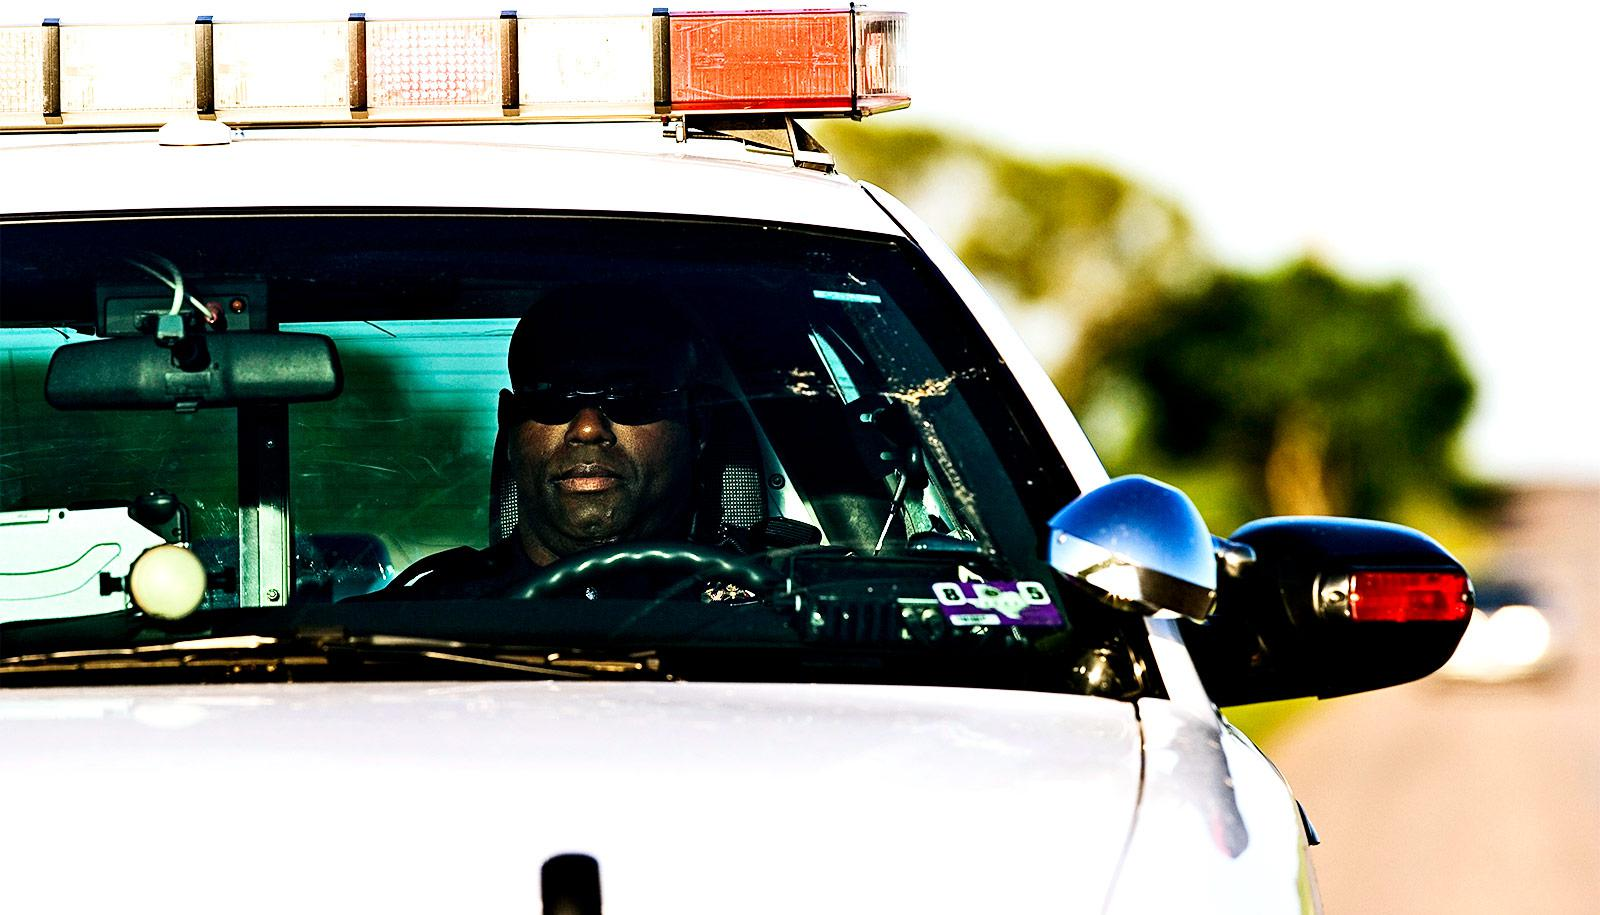 A police officer sits in a squad car